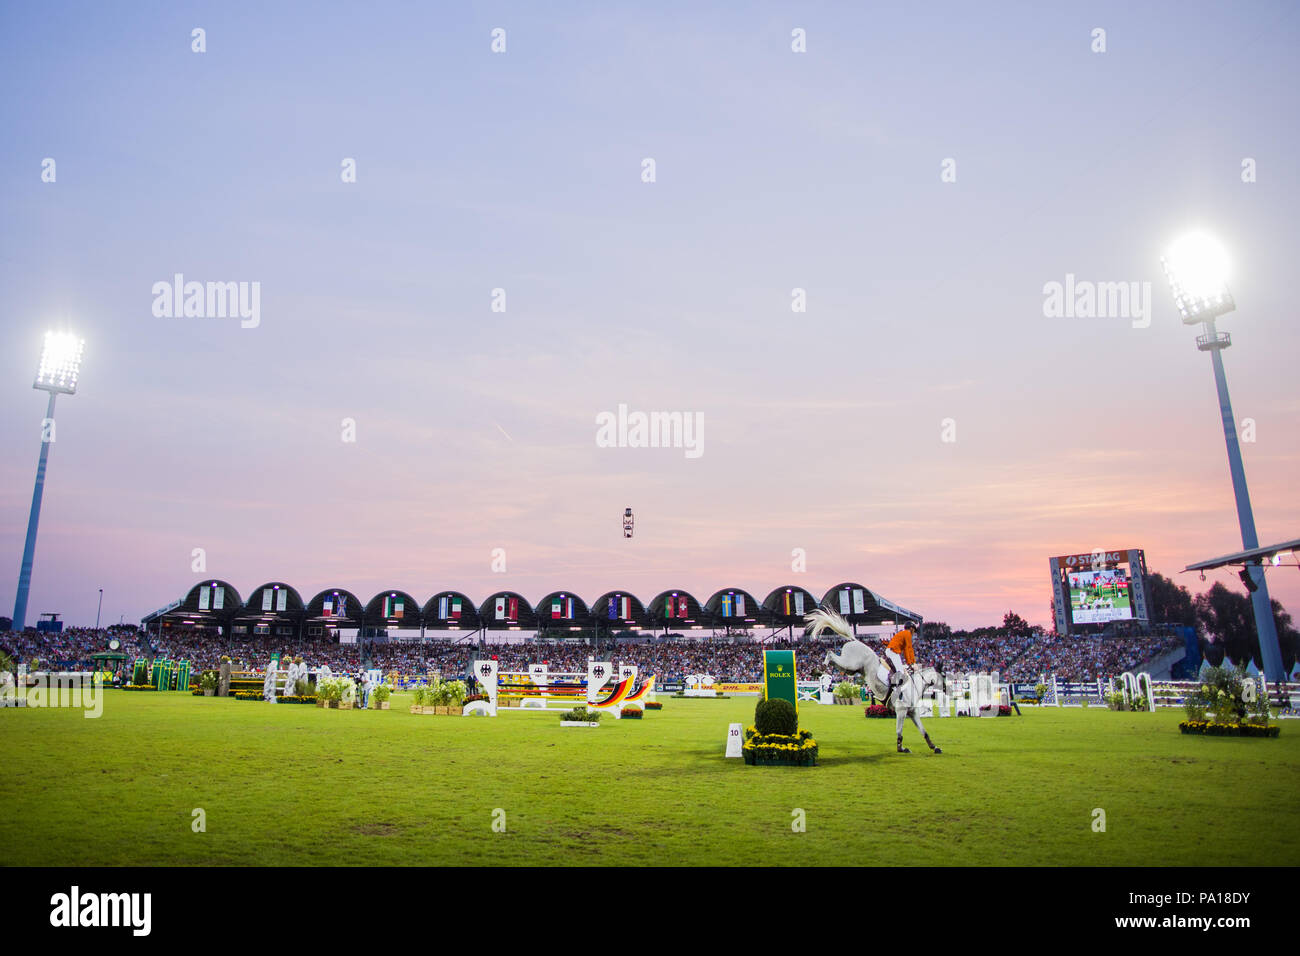 Aachen, Germany. 19th July, 2018. CHIO, Equestrian sports, jumping. Picture of the stadium. Credit: Rolf Vennenbernd/dpa/Alamy Live News - Stock Image